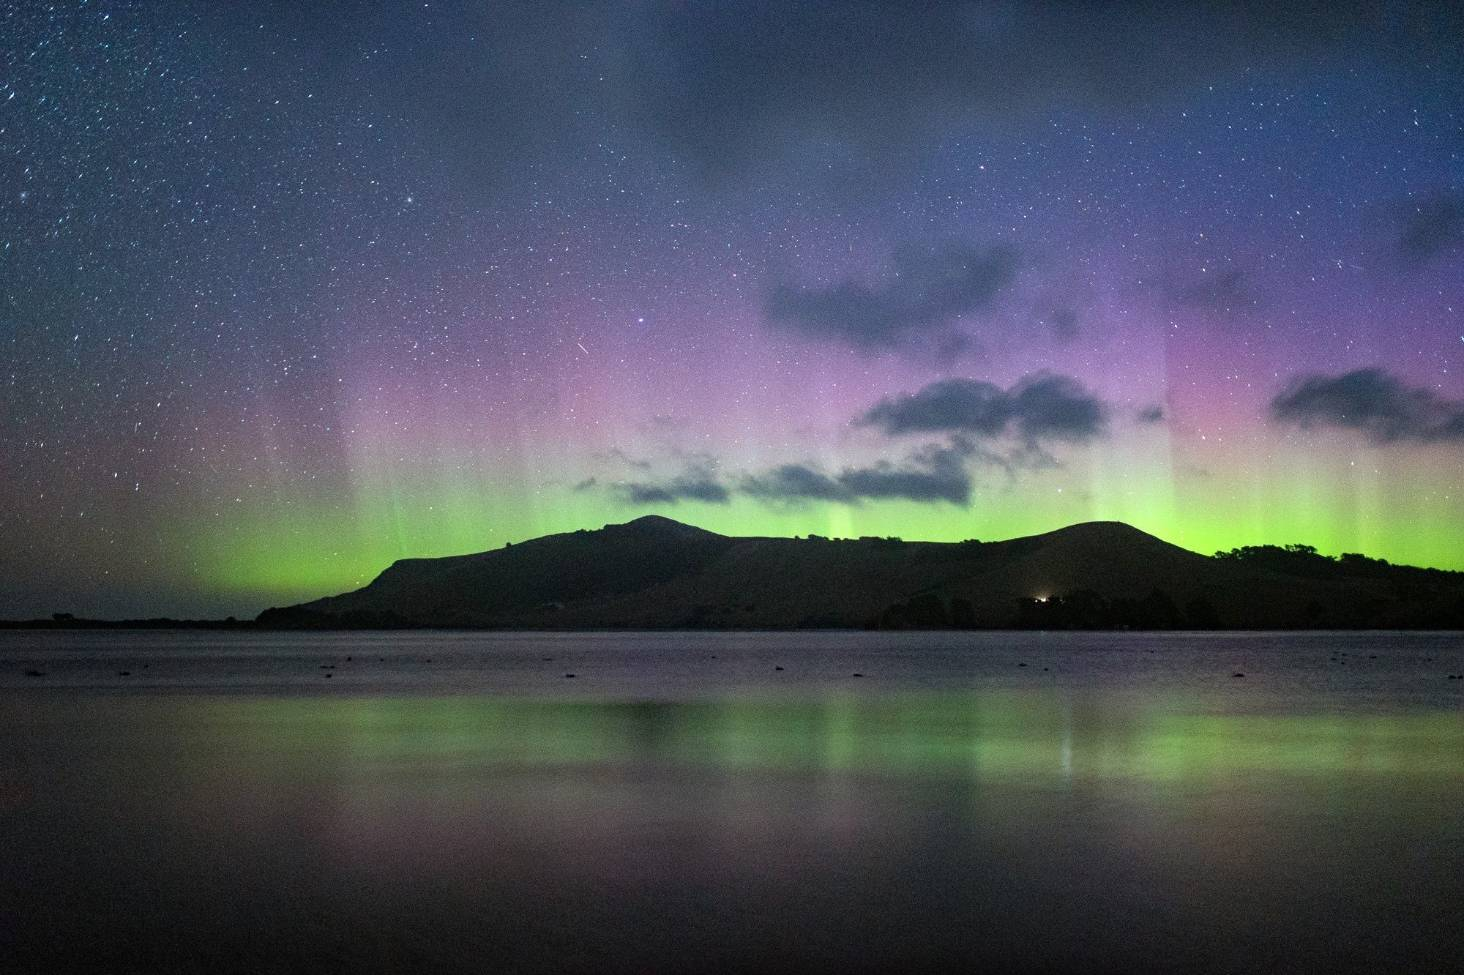 Aurora Christmas Lights 2021 Southern Lights Displays In 2021 Set To Be Best In Years Stuff Co Nz